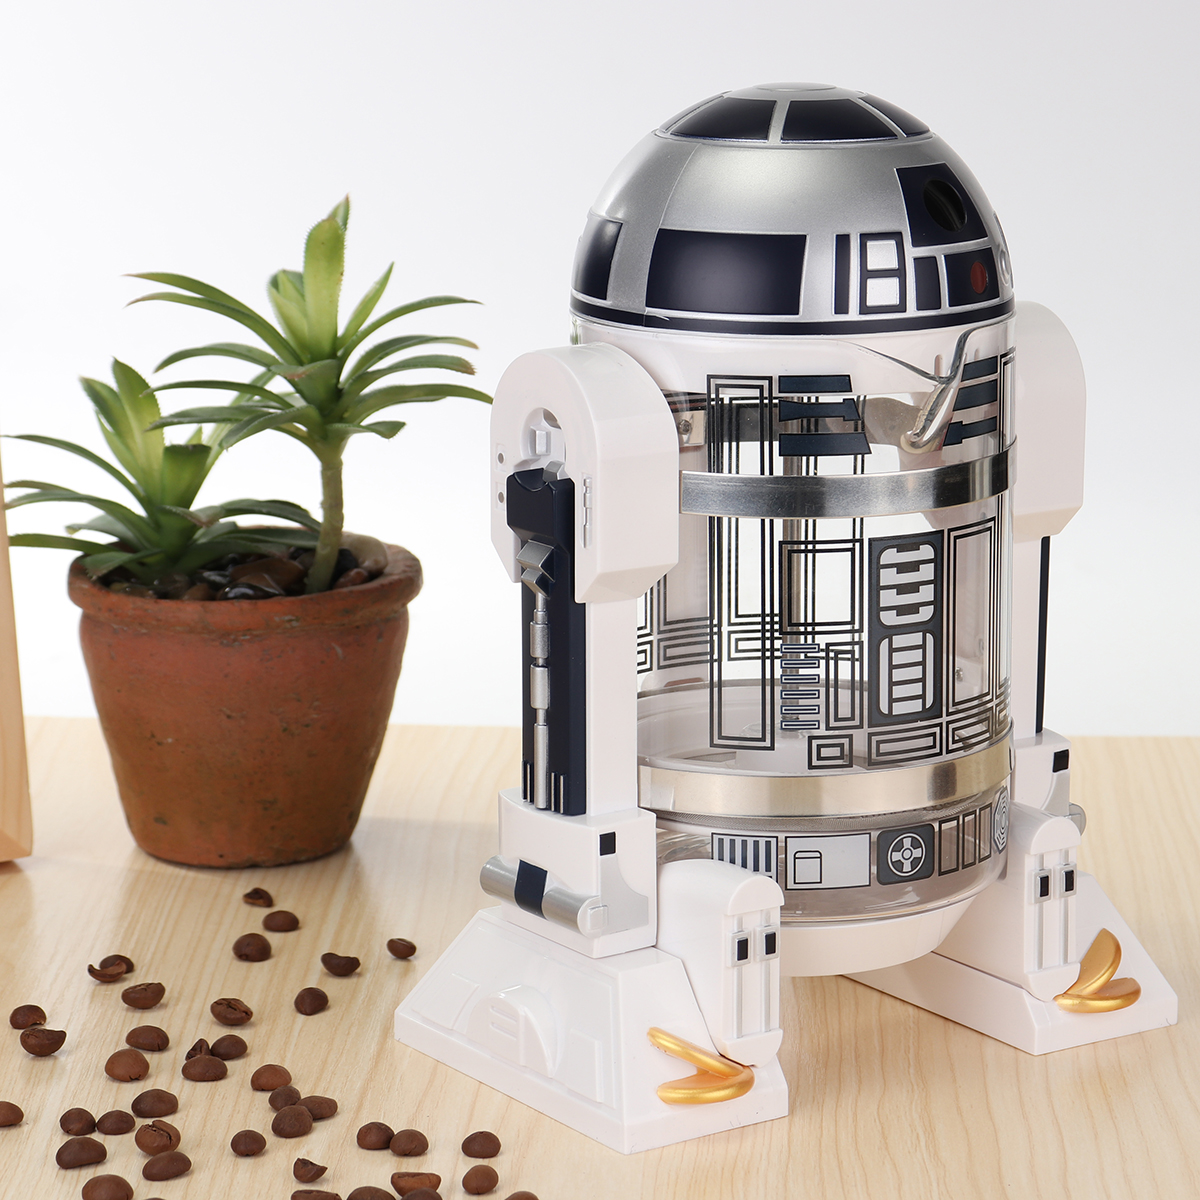 32oz/960ML R2-D2 Household Hand Made French Coffee Press Pot Robot Shape 4 Cups for Home,Office Restaurant,Hotel,Cafe,Coffee Time